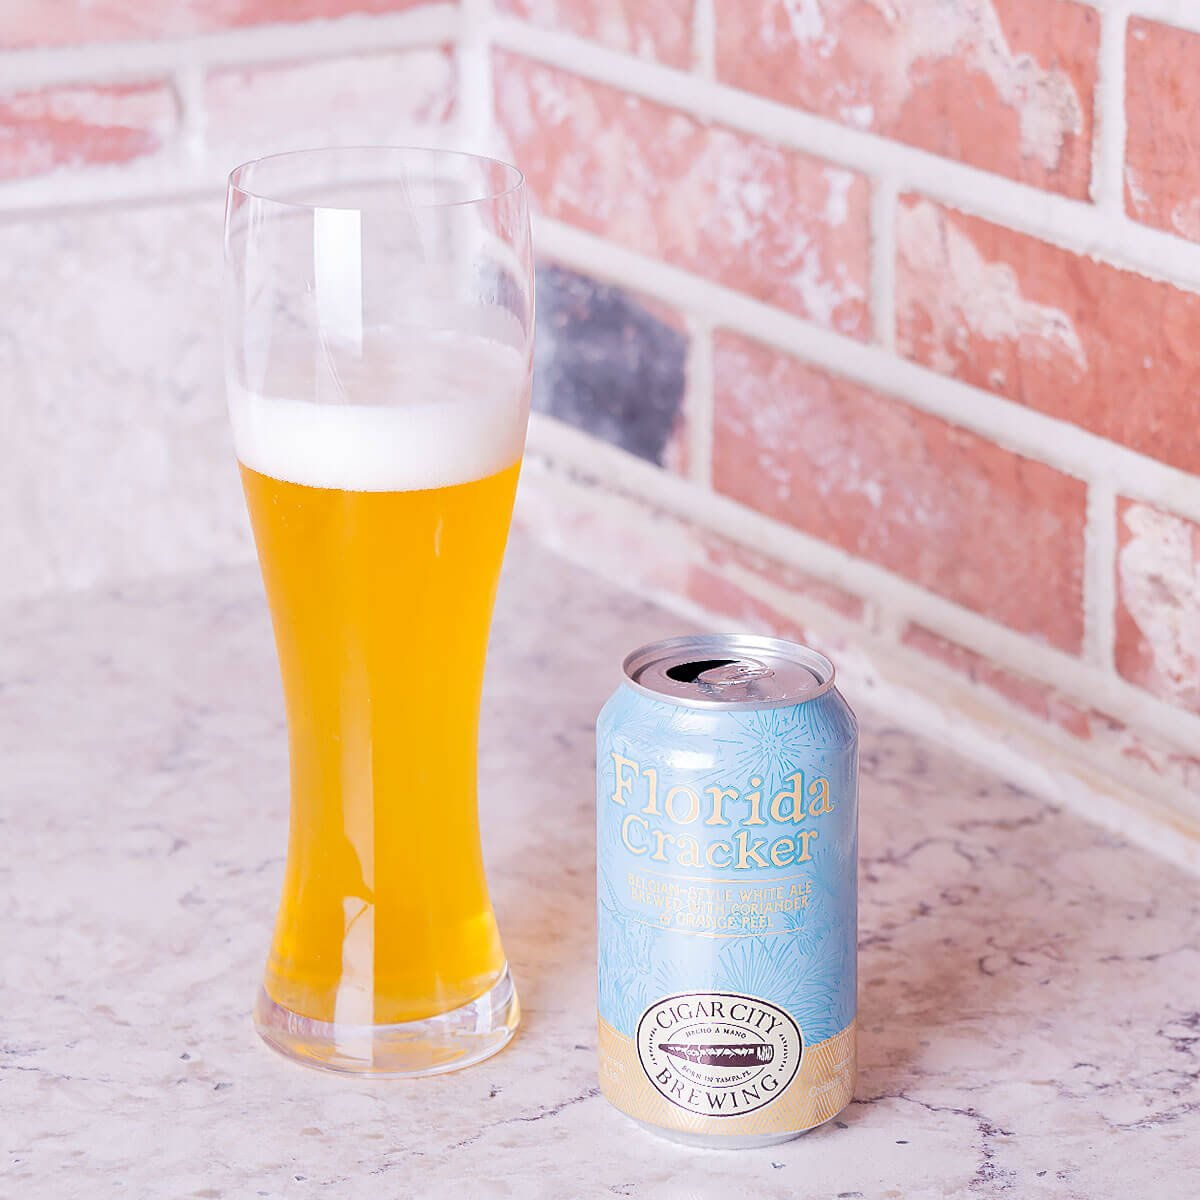 Florida Cracker is a Belgian-style Witbier by Cigar City Brewing is a light and refreshing blend of wheat bread with orange and lime citrus.